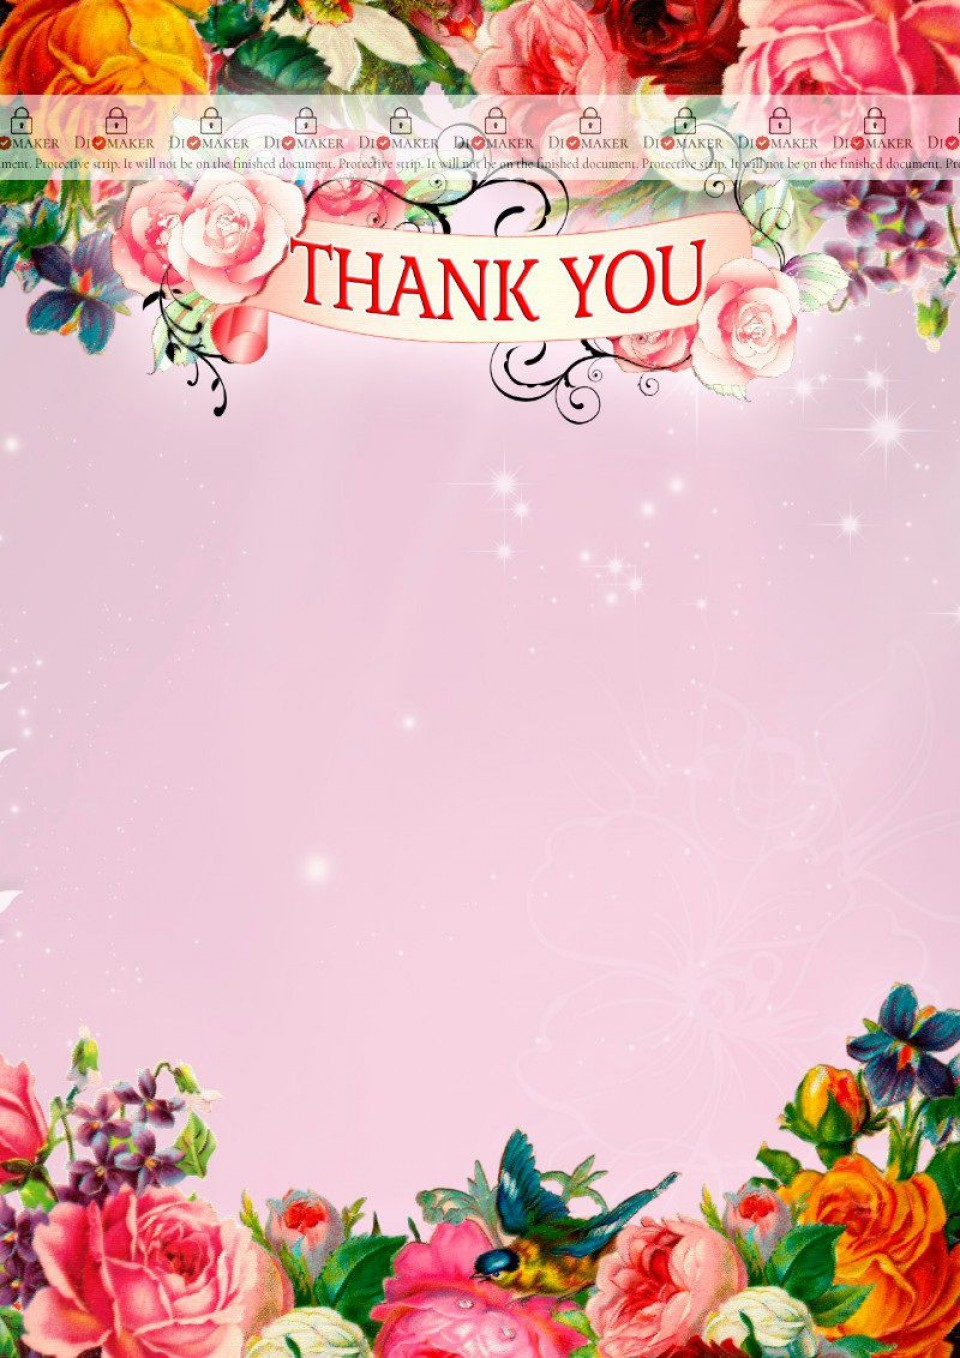 006 Fascinating Thank You Card Template Example  Wedding Busines Word Free960